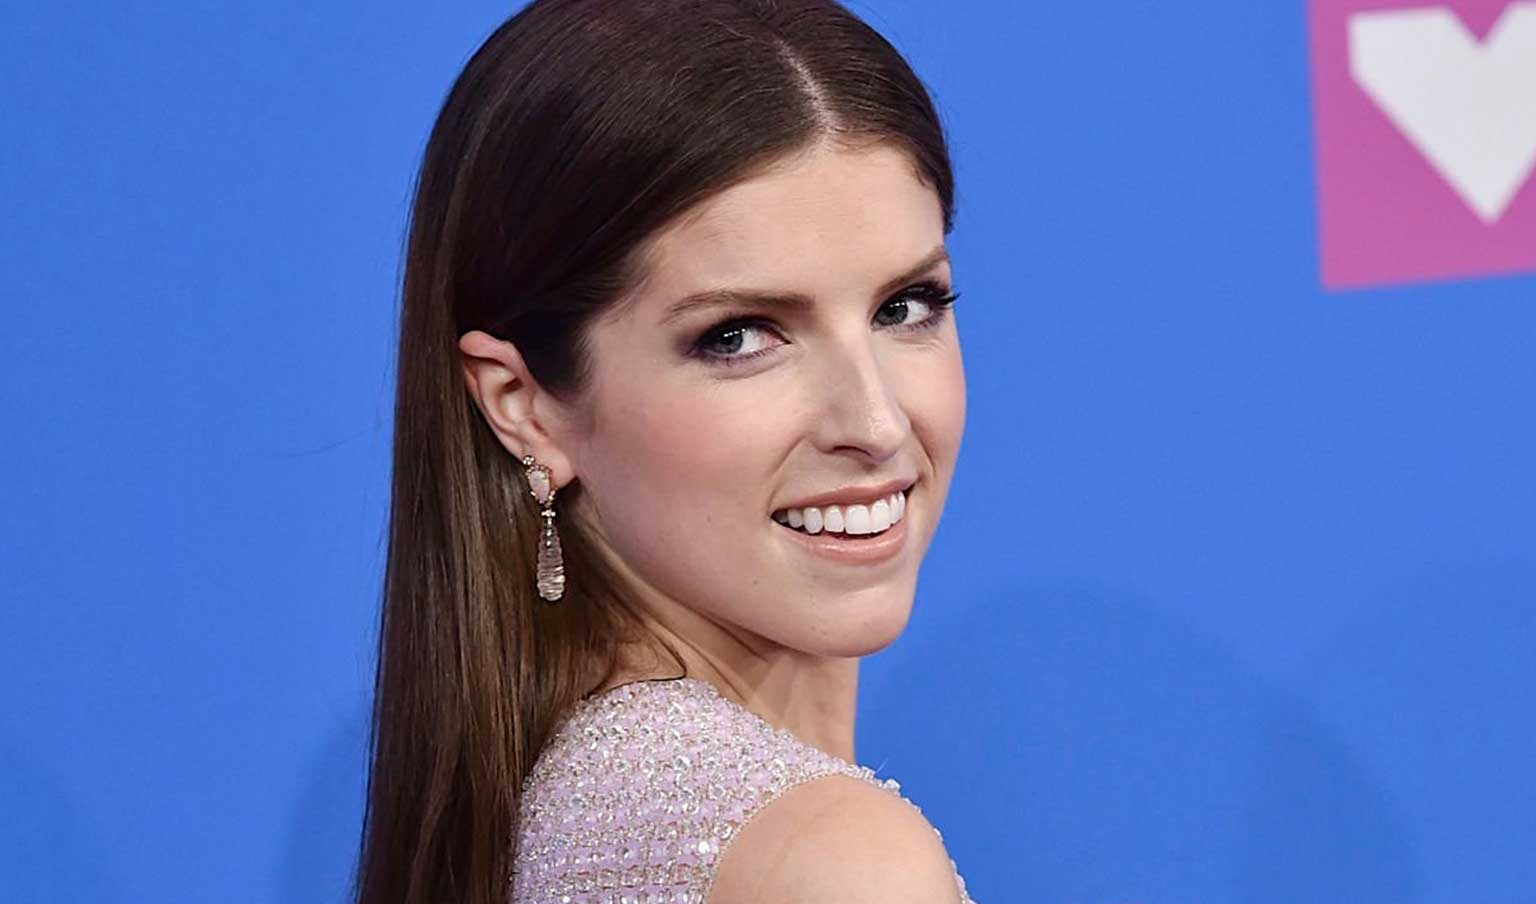 Anna Kendrick showing off an amazing smile after Invisalign treatment